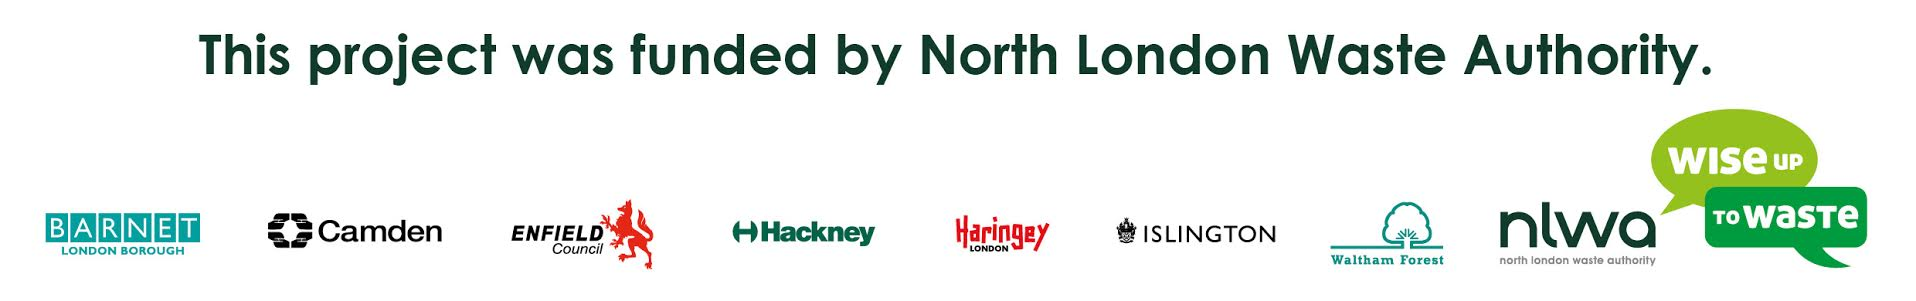 Funded by the North London Waste Authority